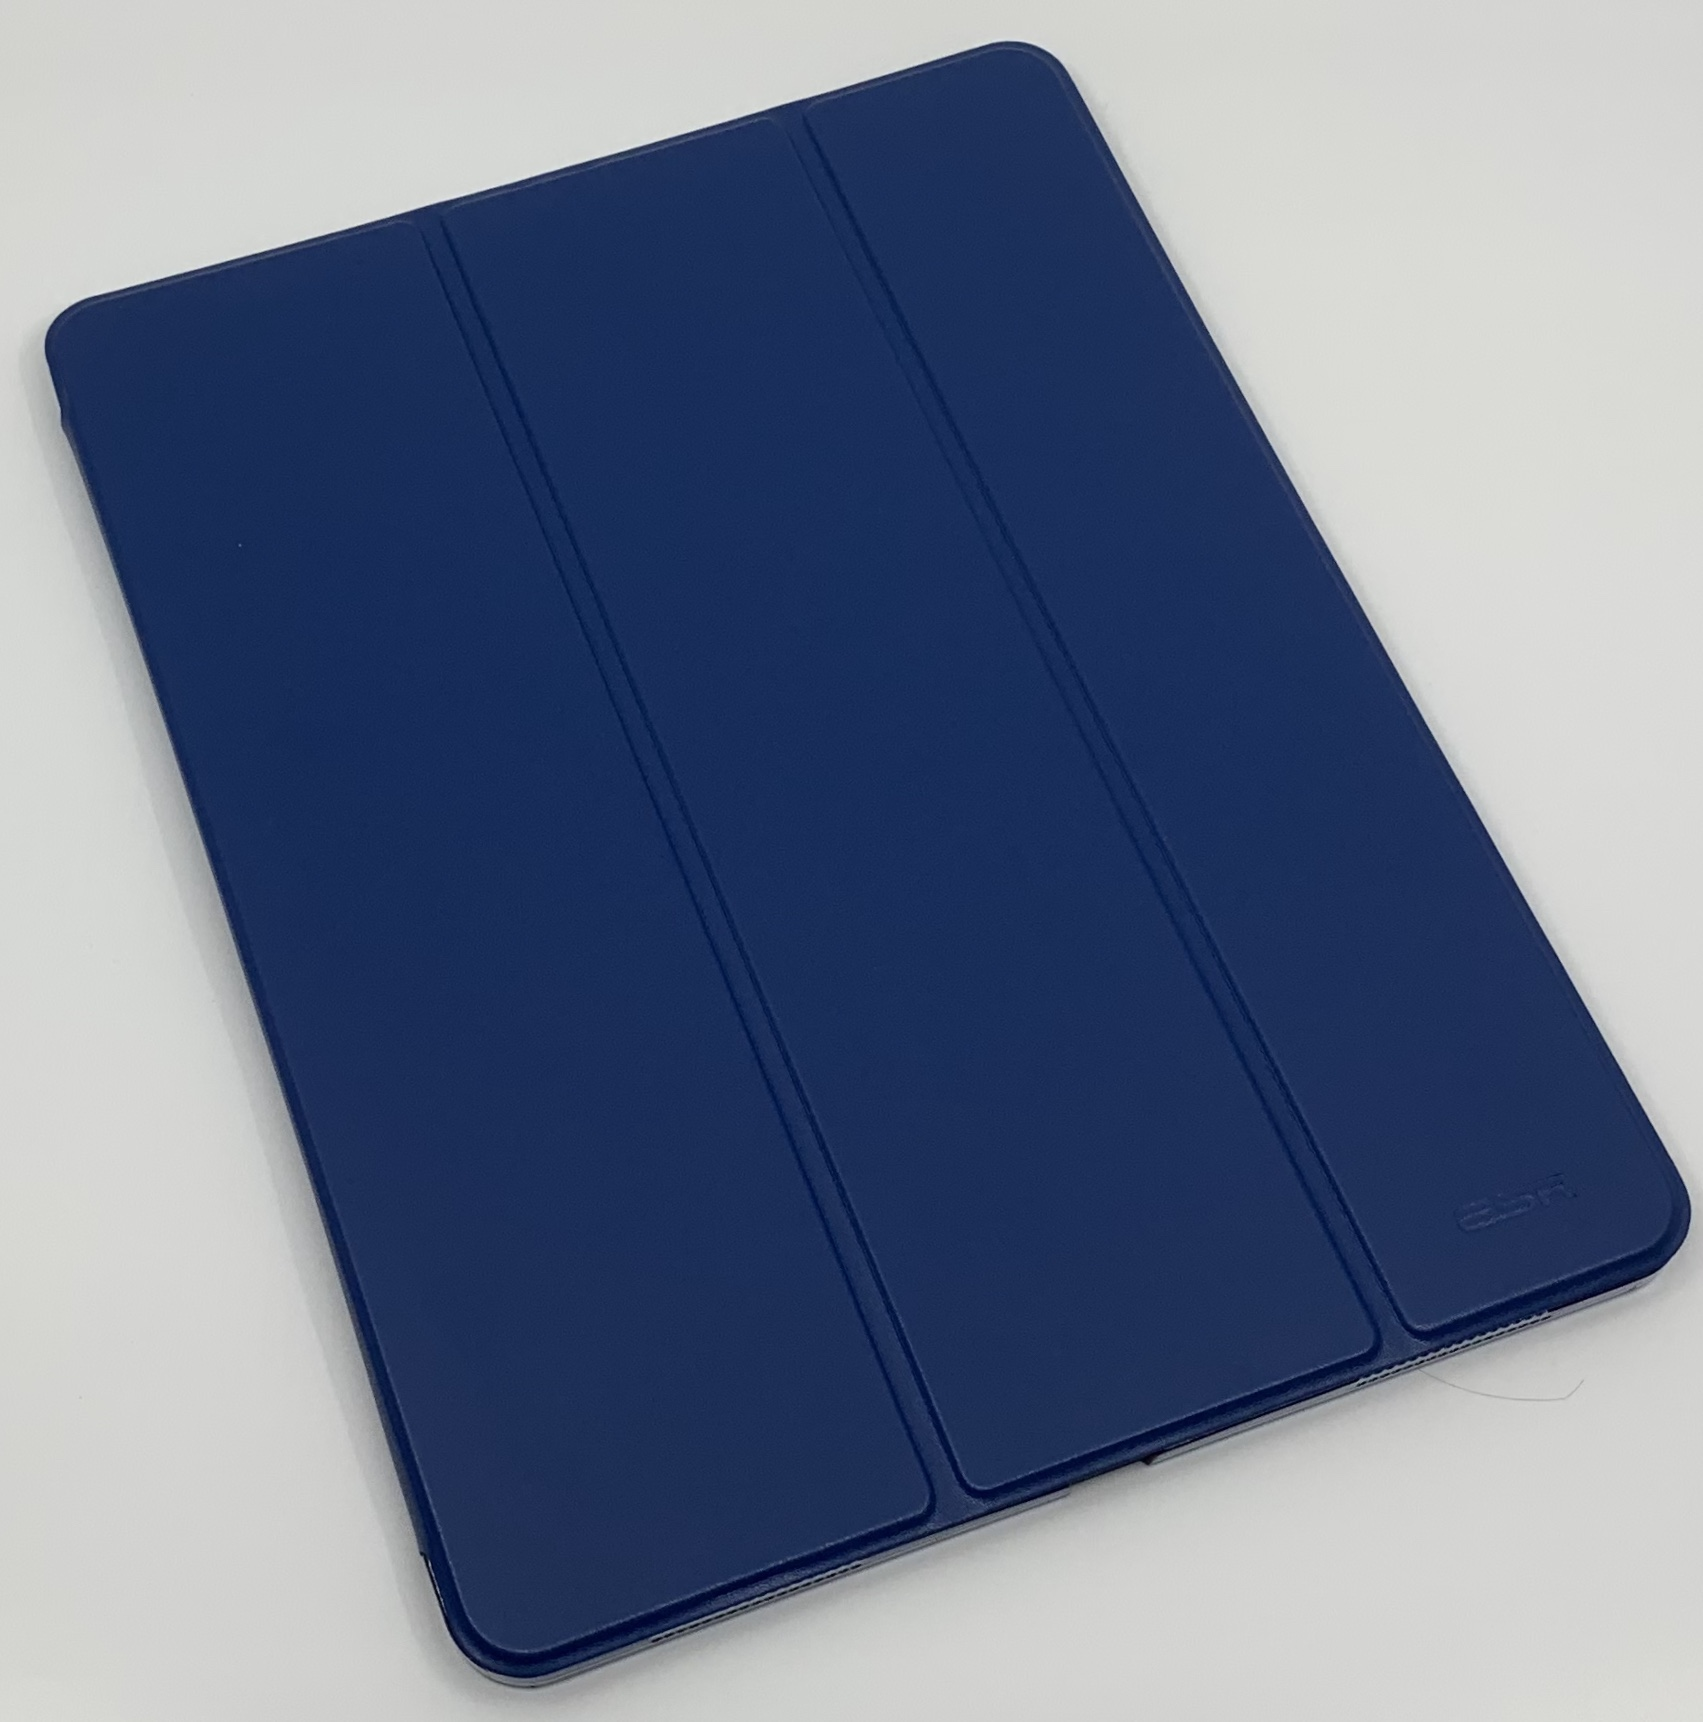 Where Are All the New iPad Pro Cases?